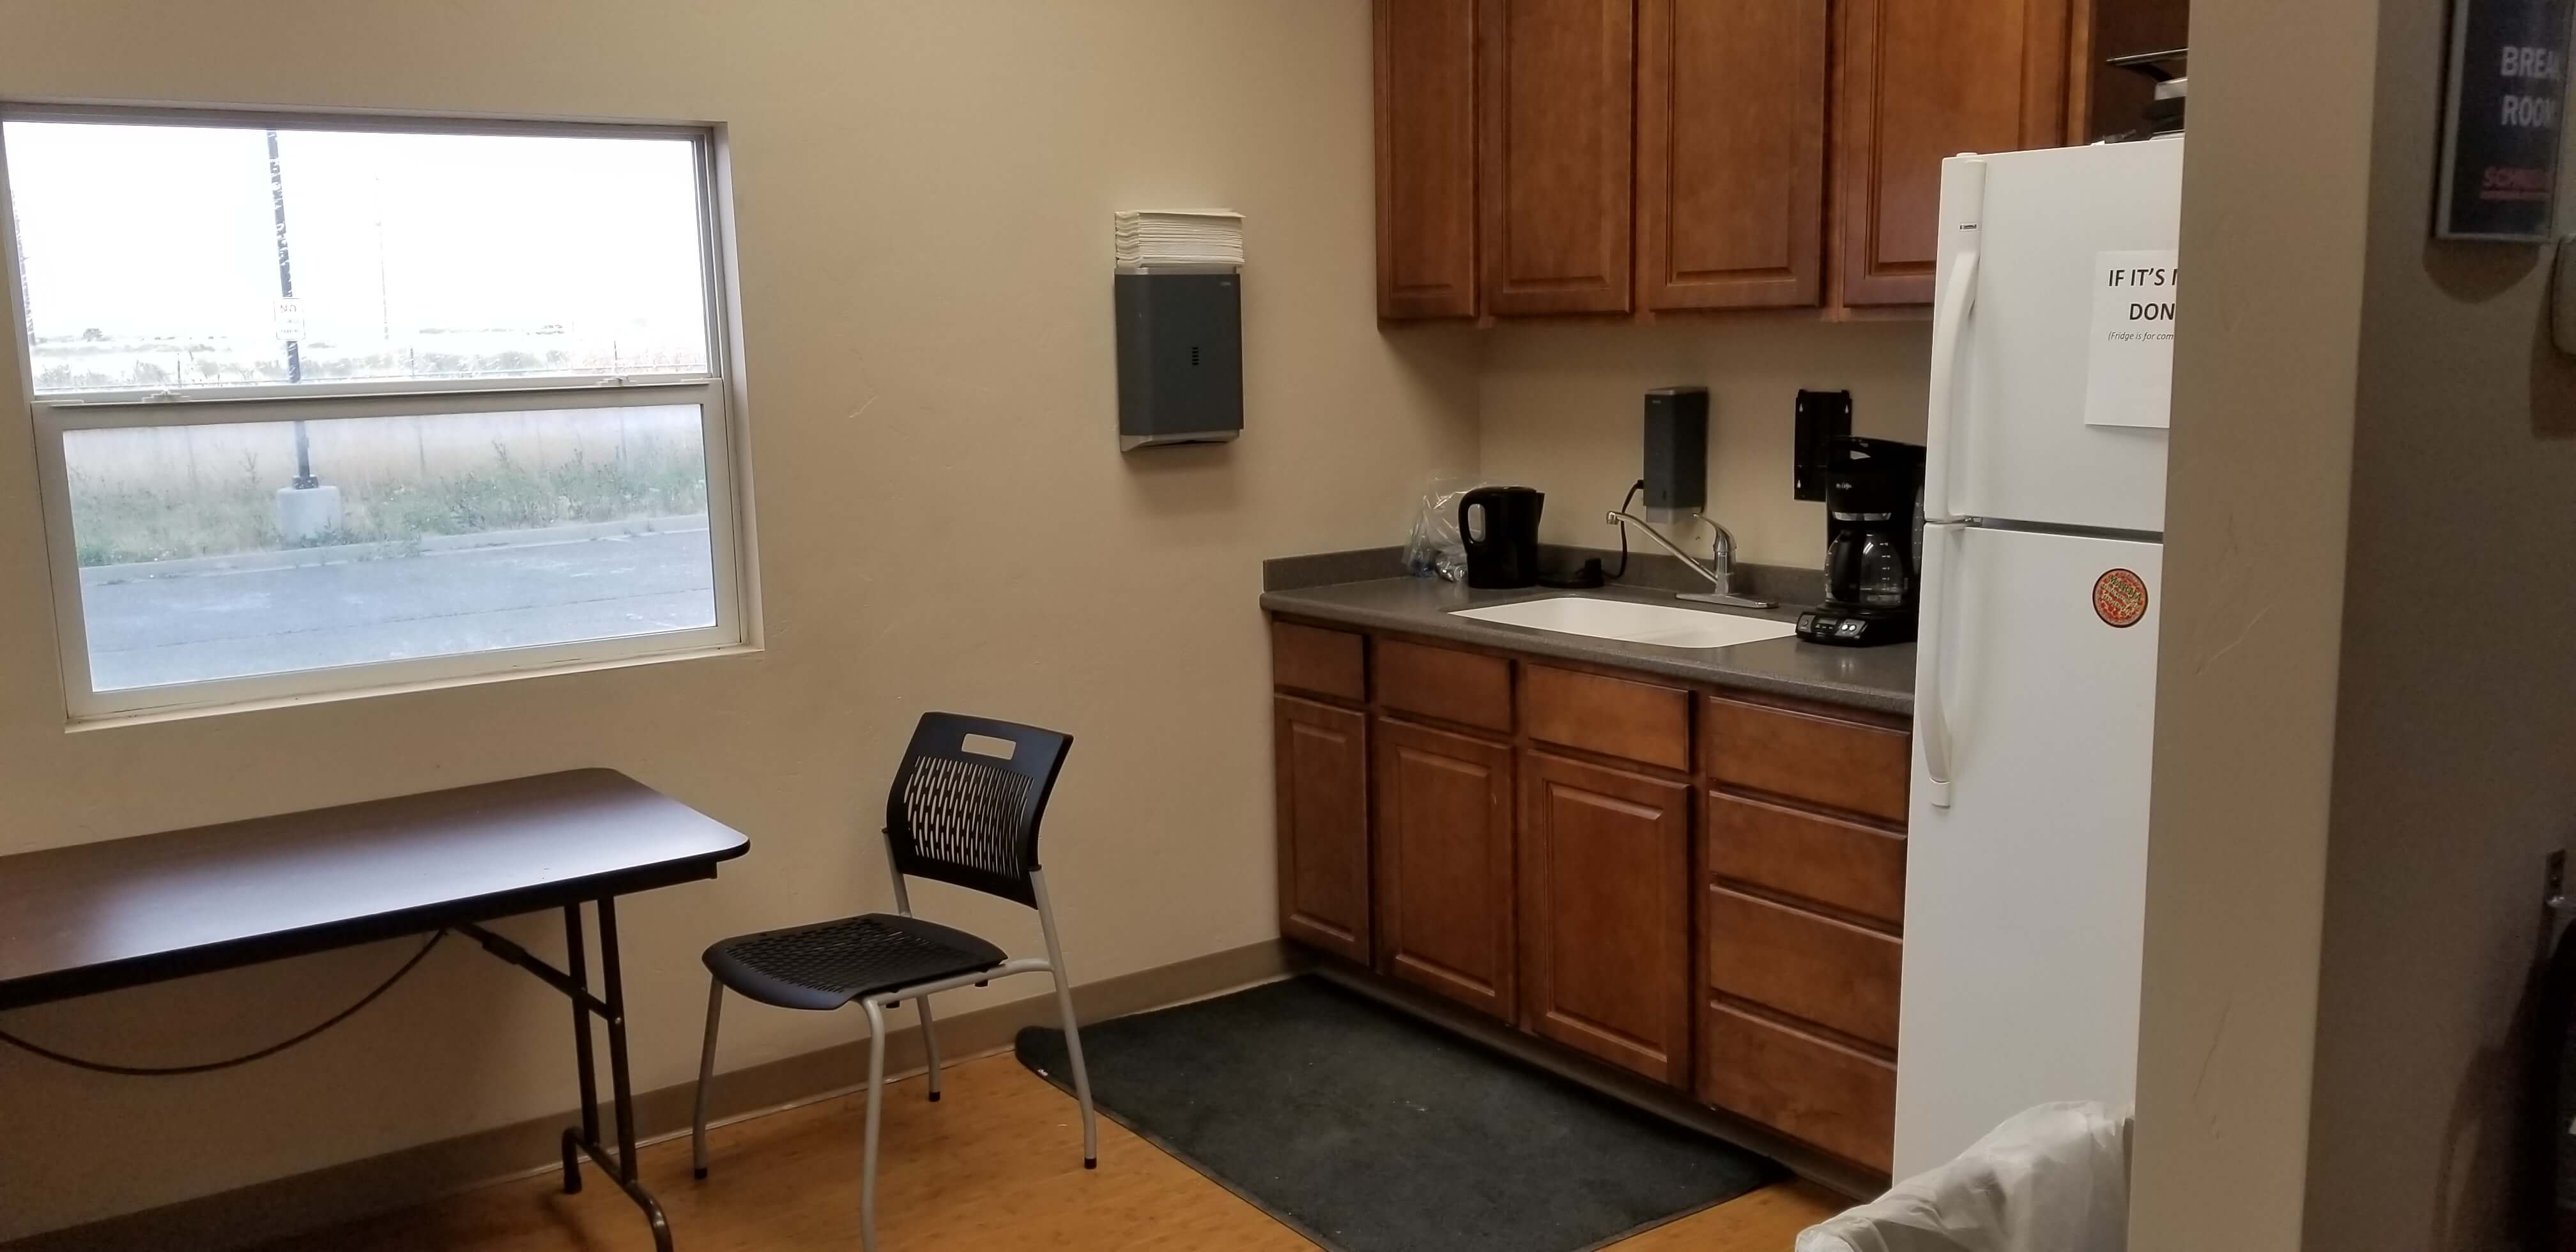 Salt Lake City Facility Kitchenette